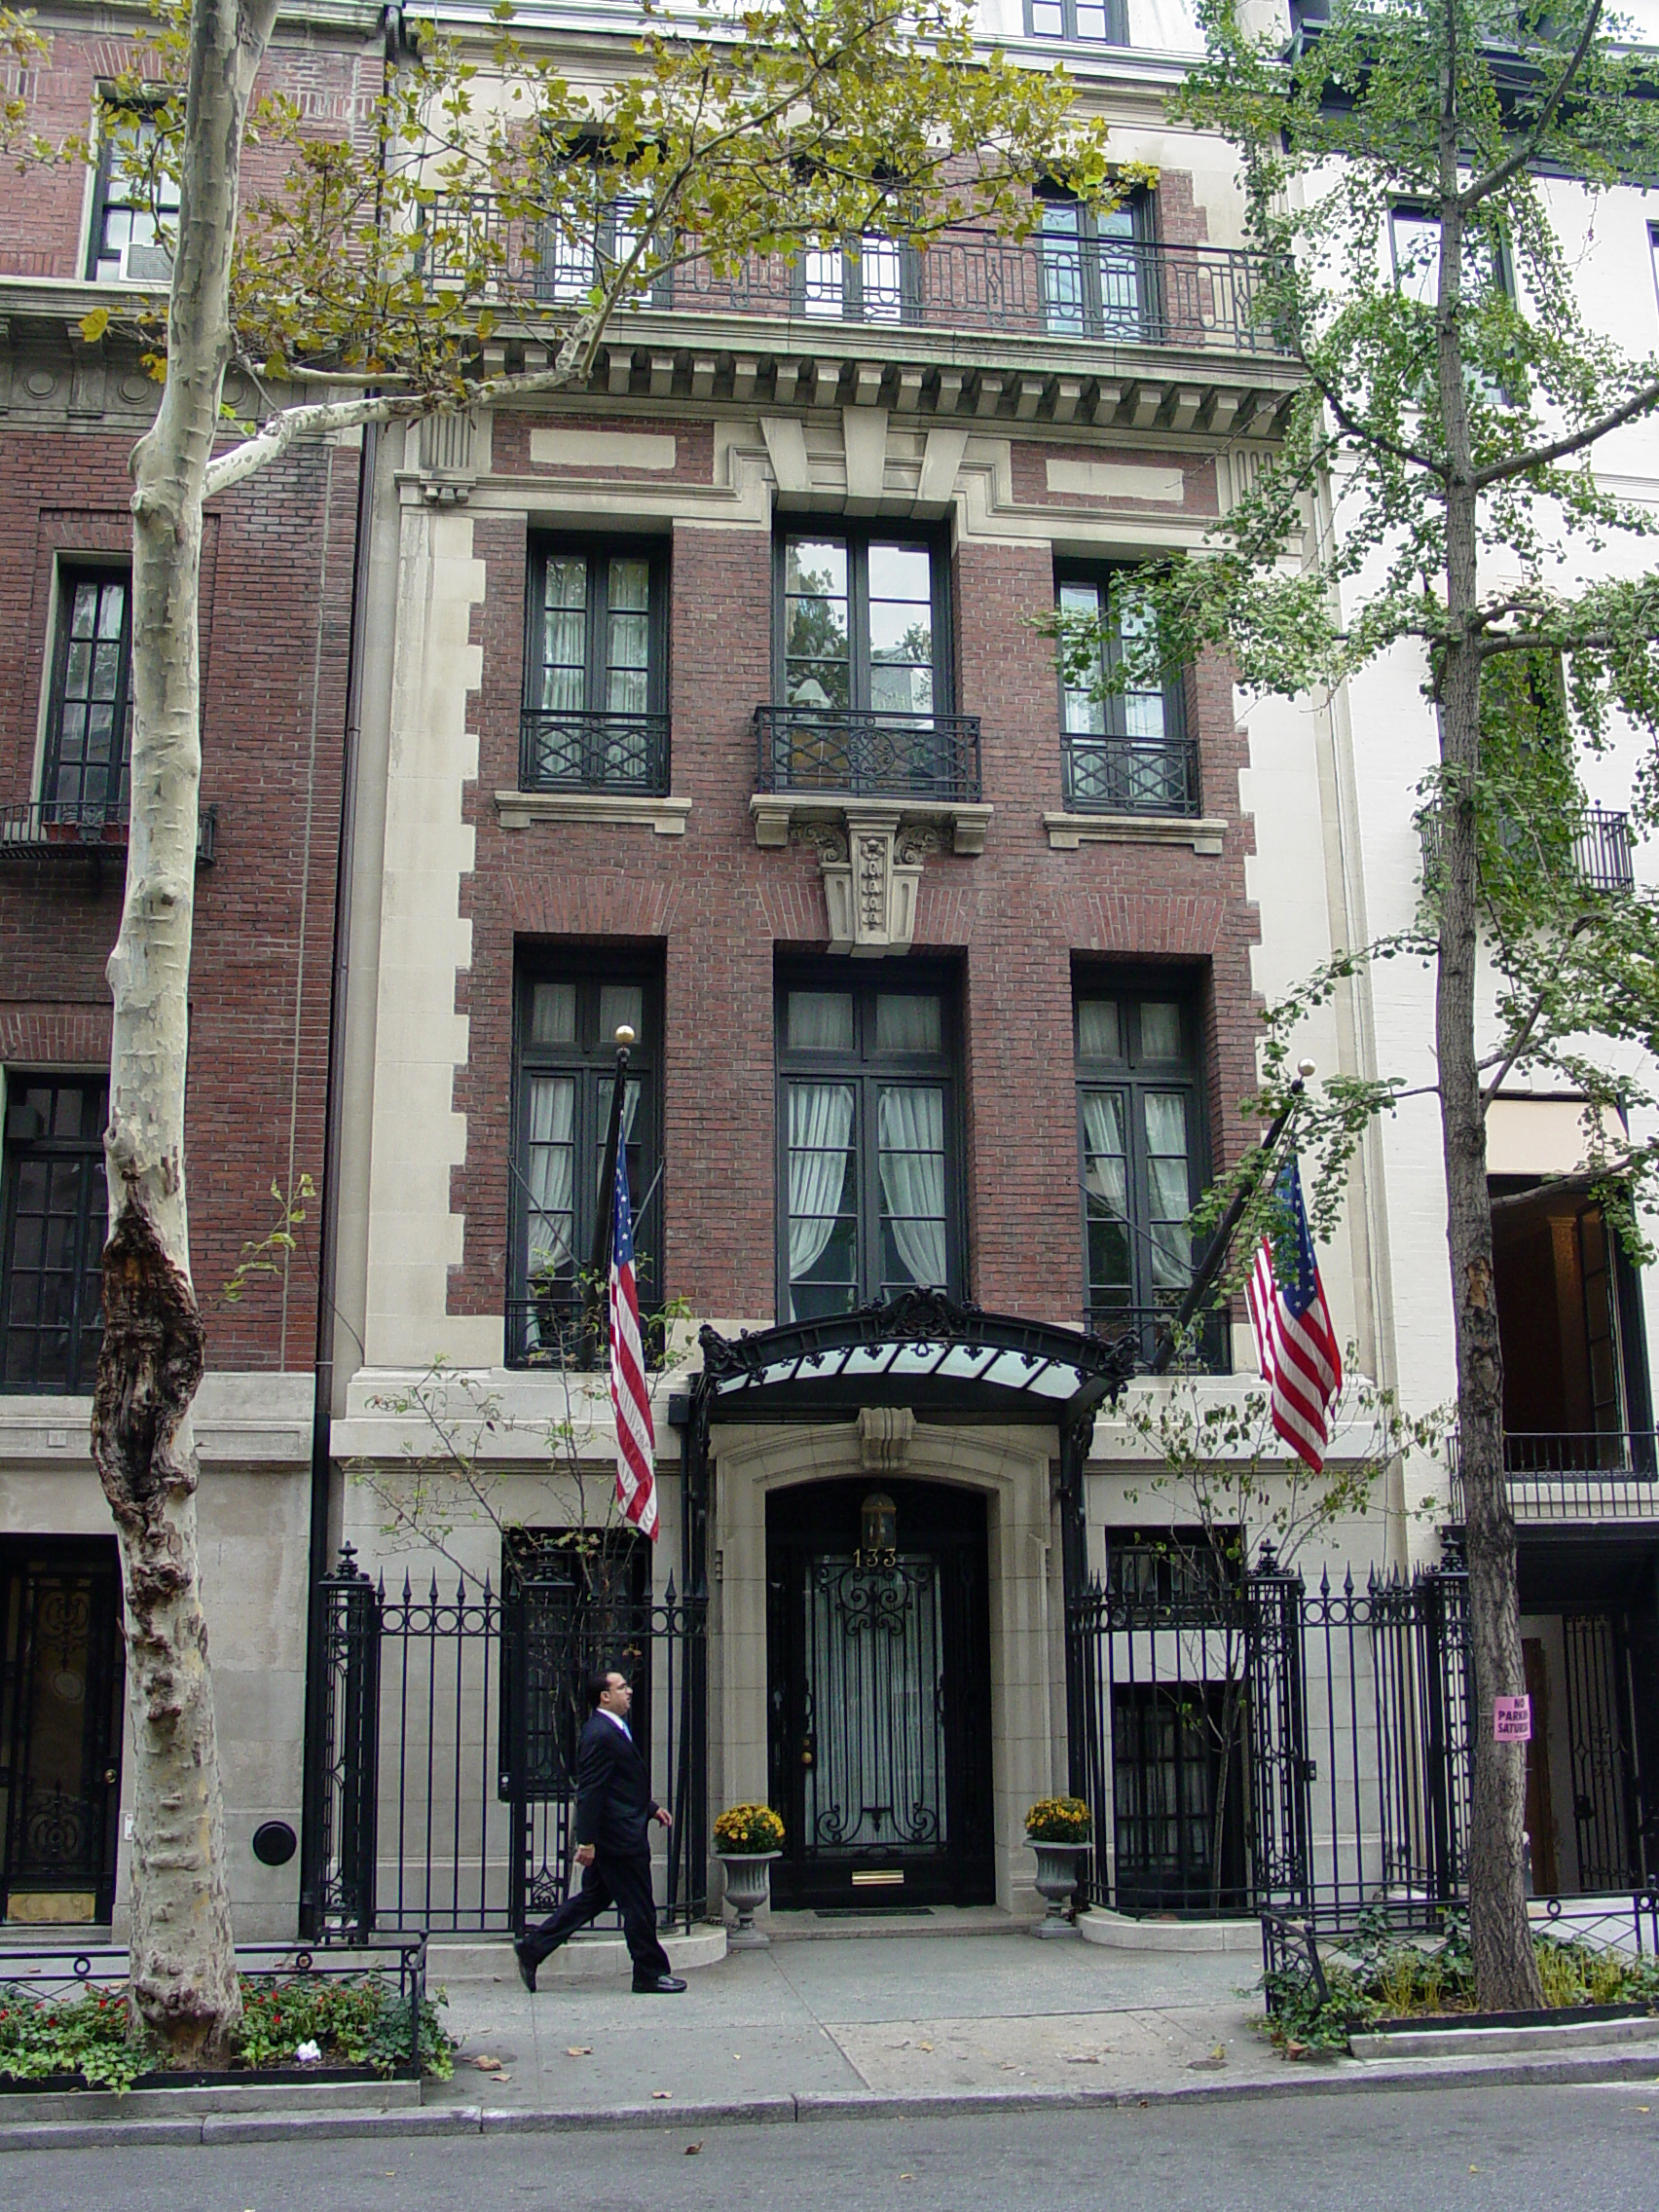 File everleigh club exterior jpg wikipedia the free encyclopedia - Bathhouse John Grave Chicago The Everleigh Club Pinterest Chicago Bathhouse And Johns